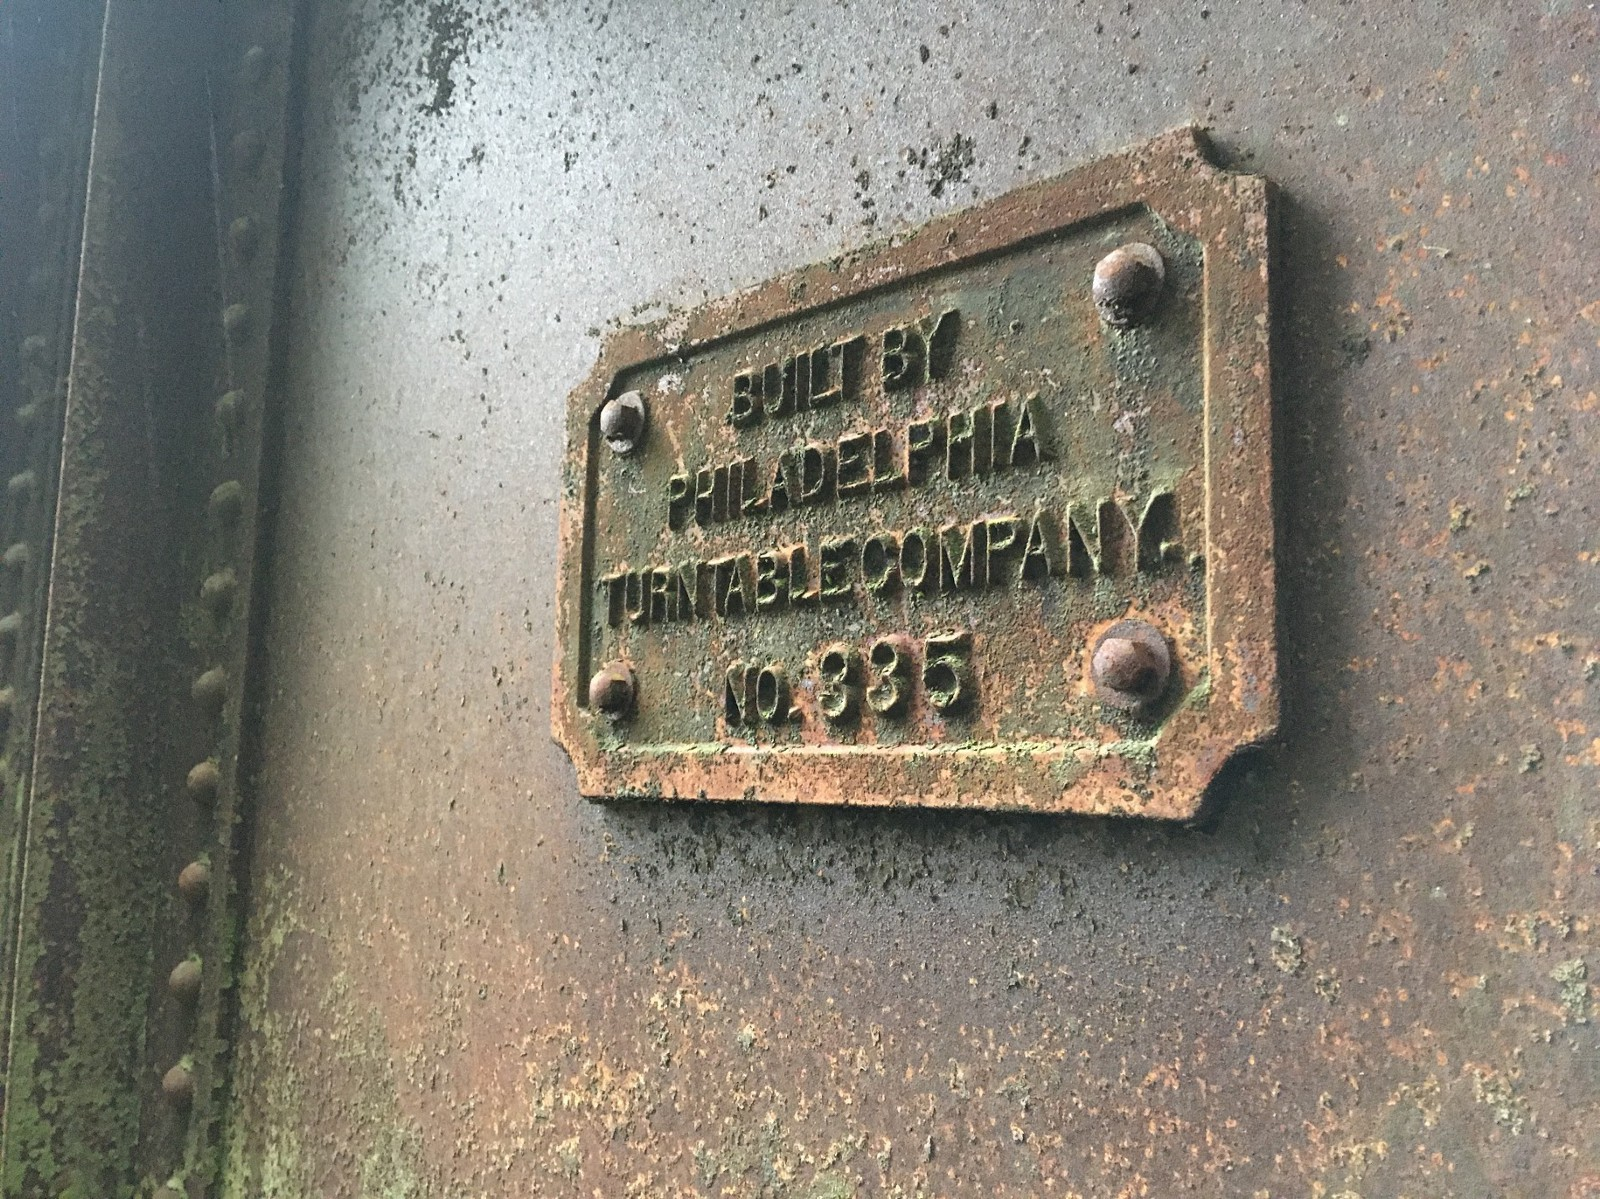 A builders plate attached to side of rusty turntable